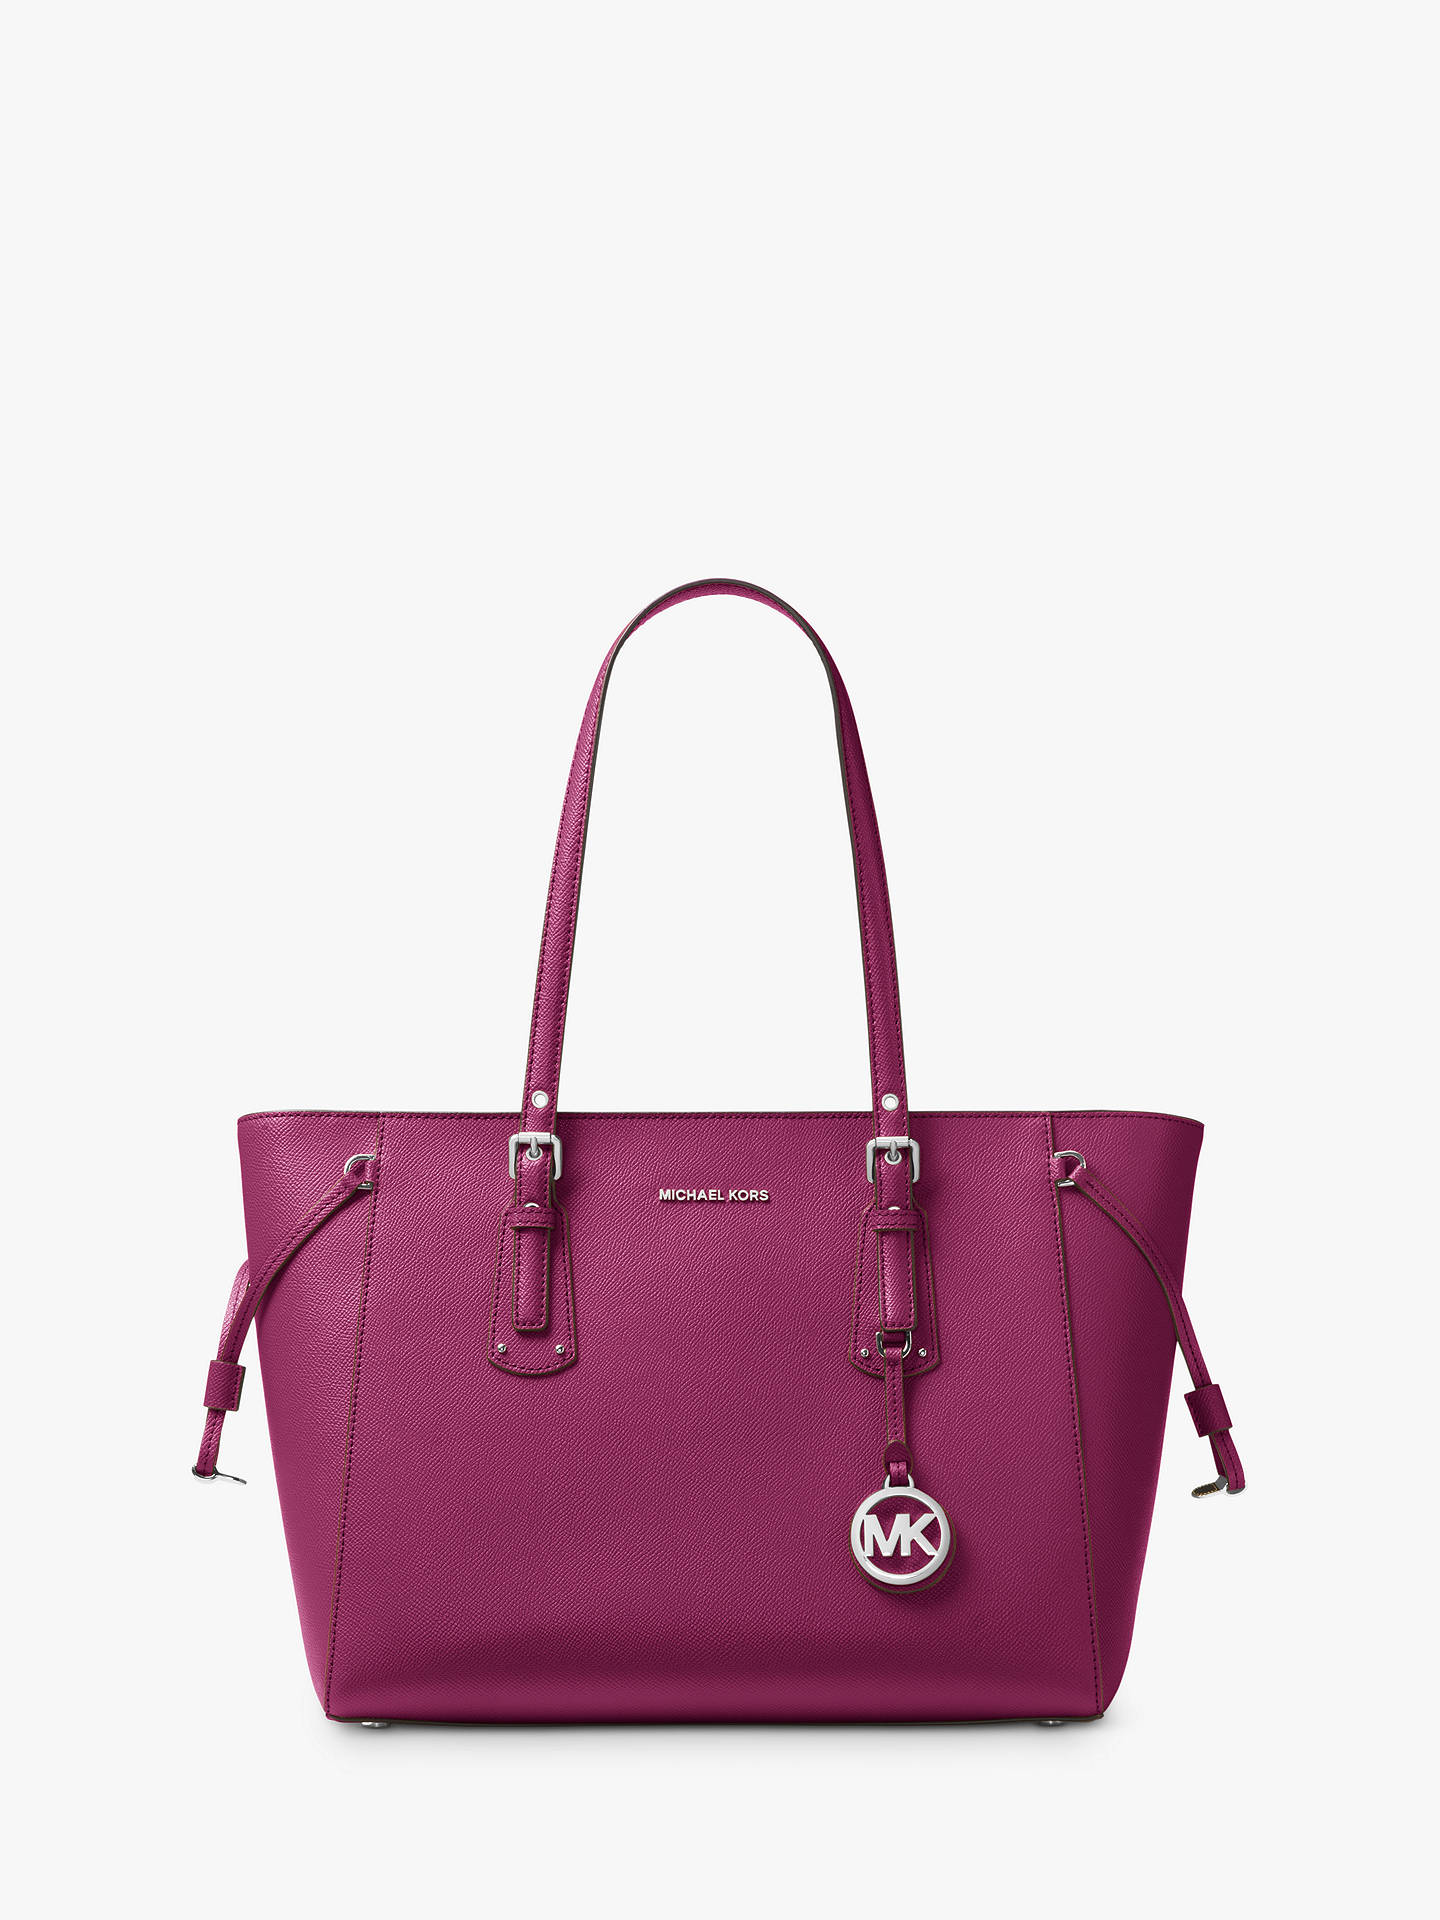 Michael Kors Voyager Leather